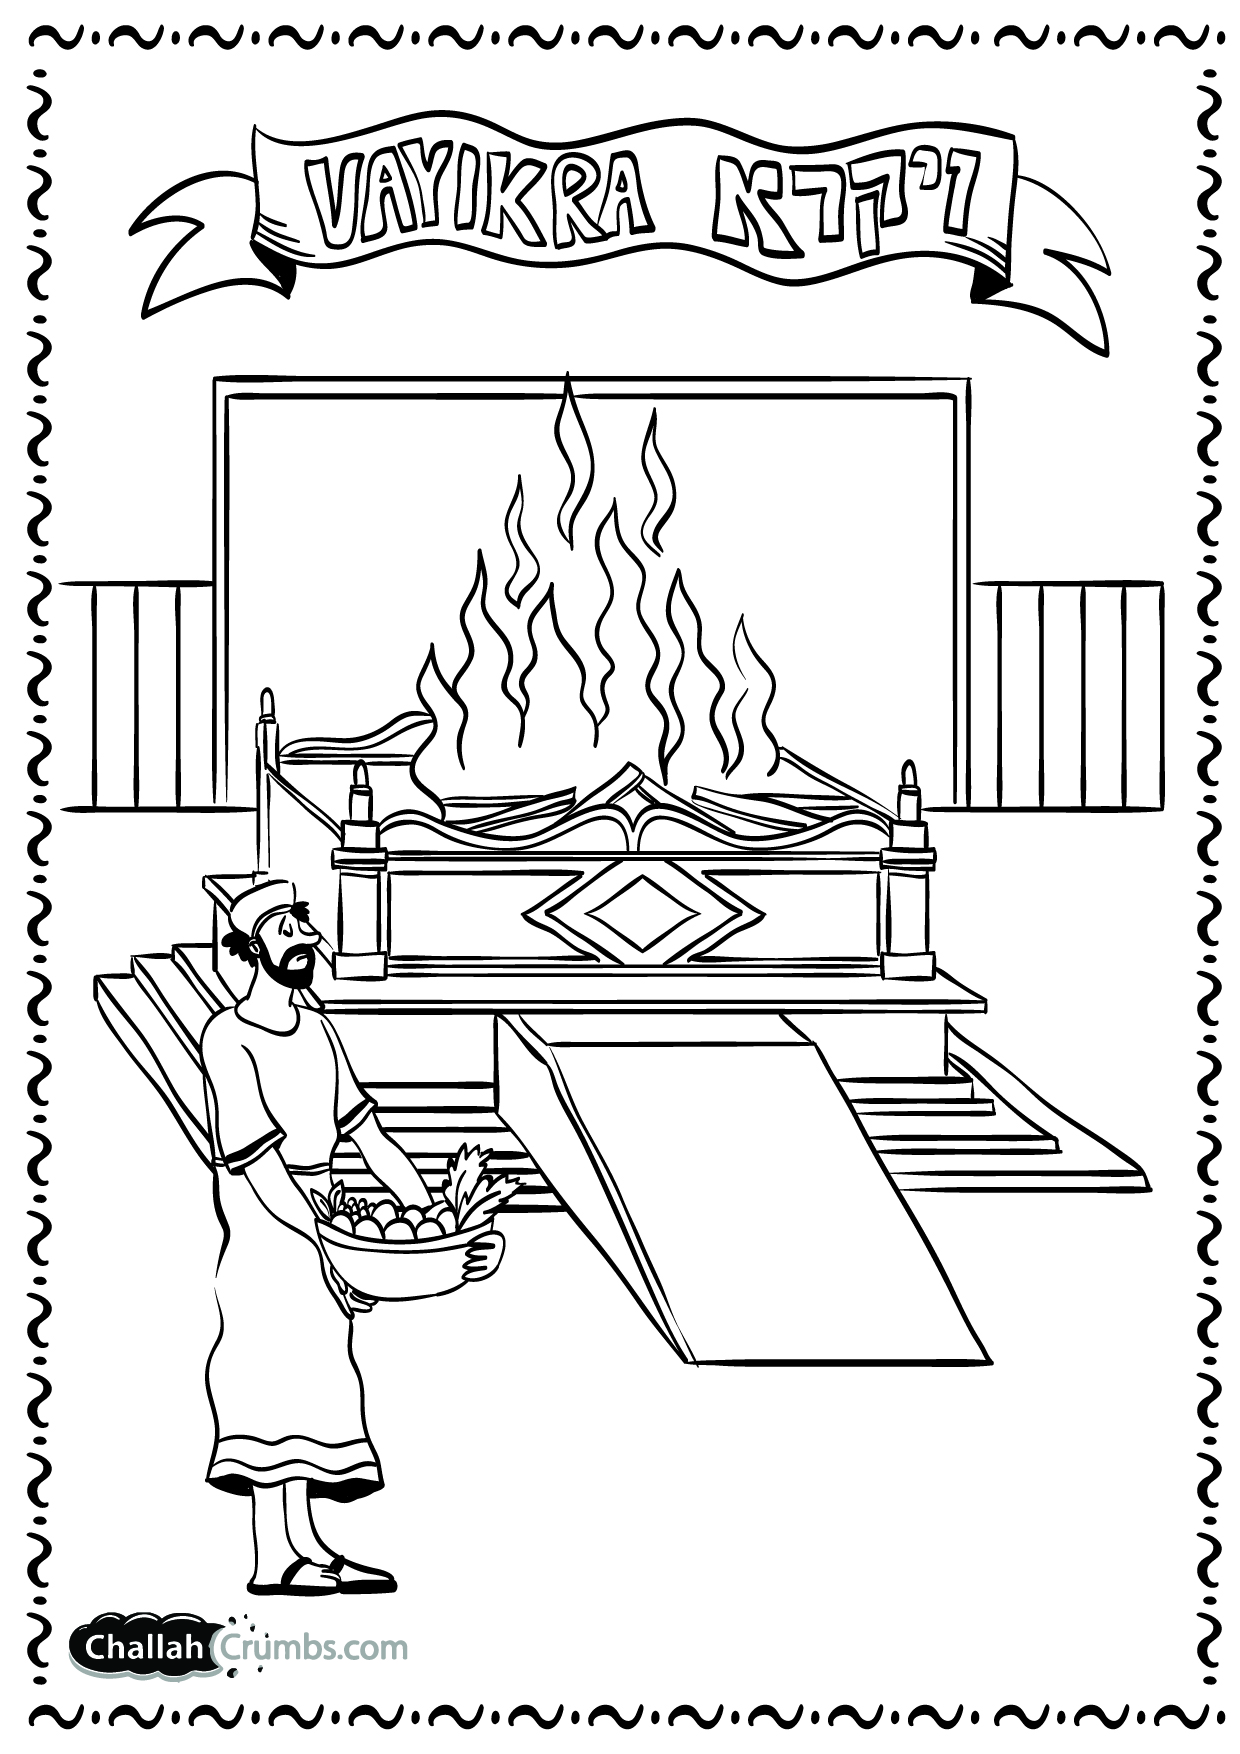 parshat vayechi coloring pages - photo#12